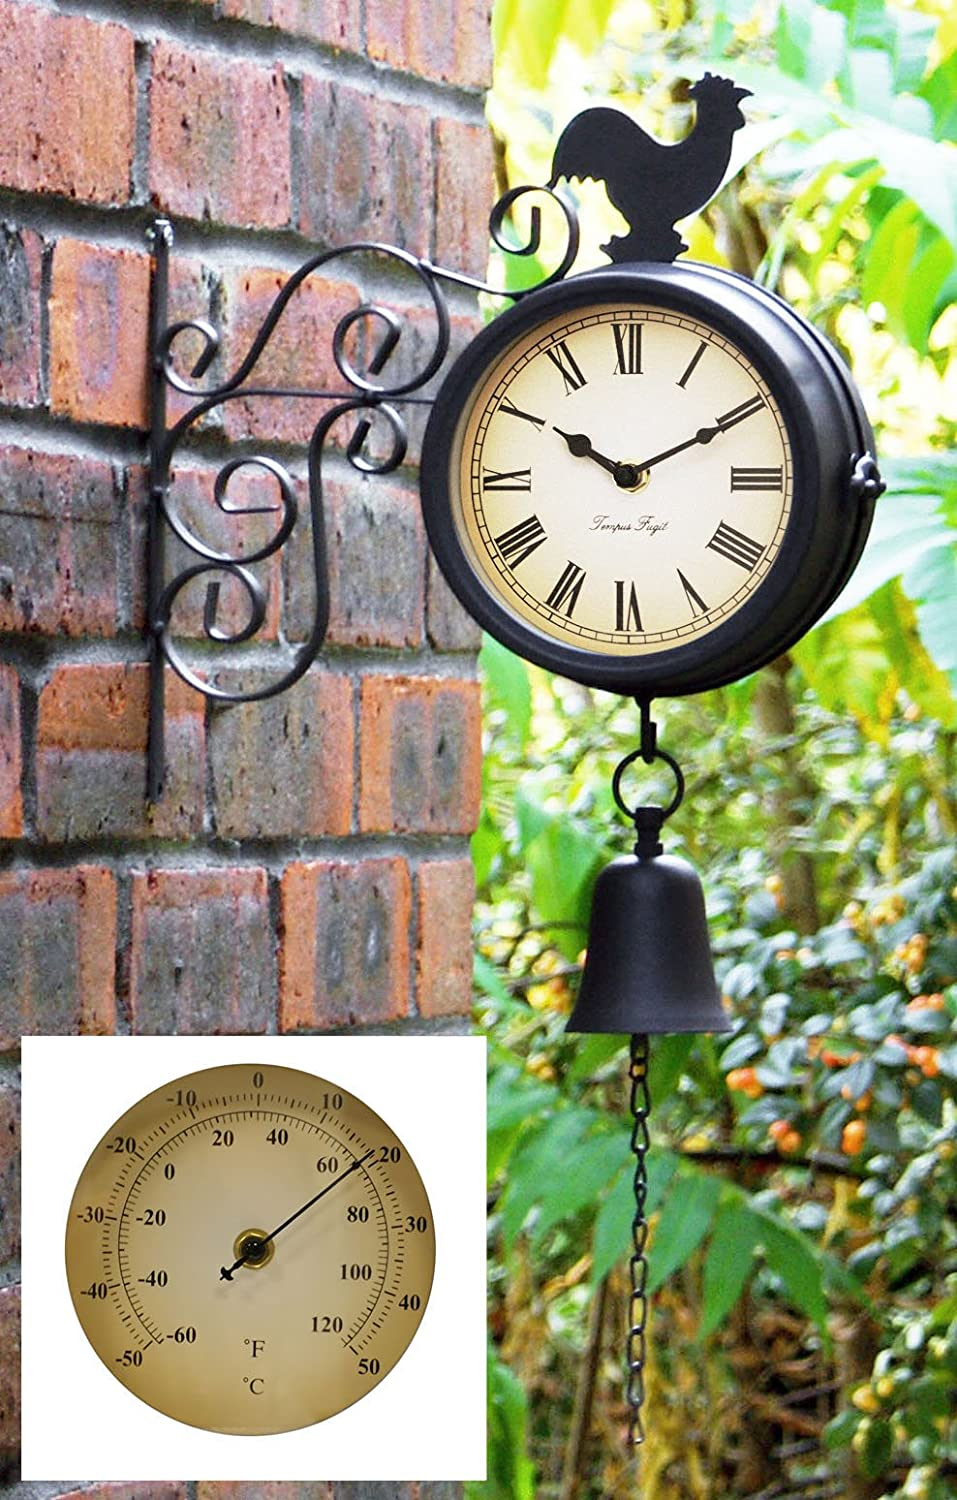 Amazon.com : Cockerel and Bell Outdoor Clock and Thermometer - 47cm ...